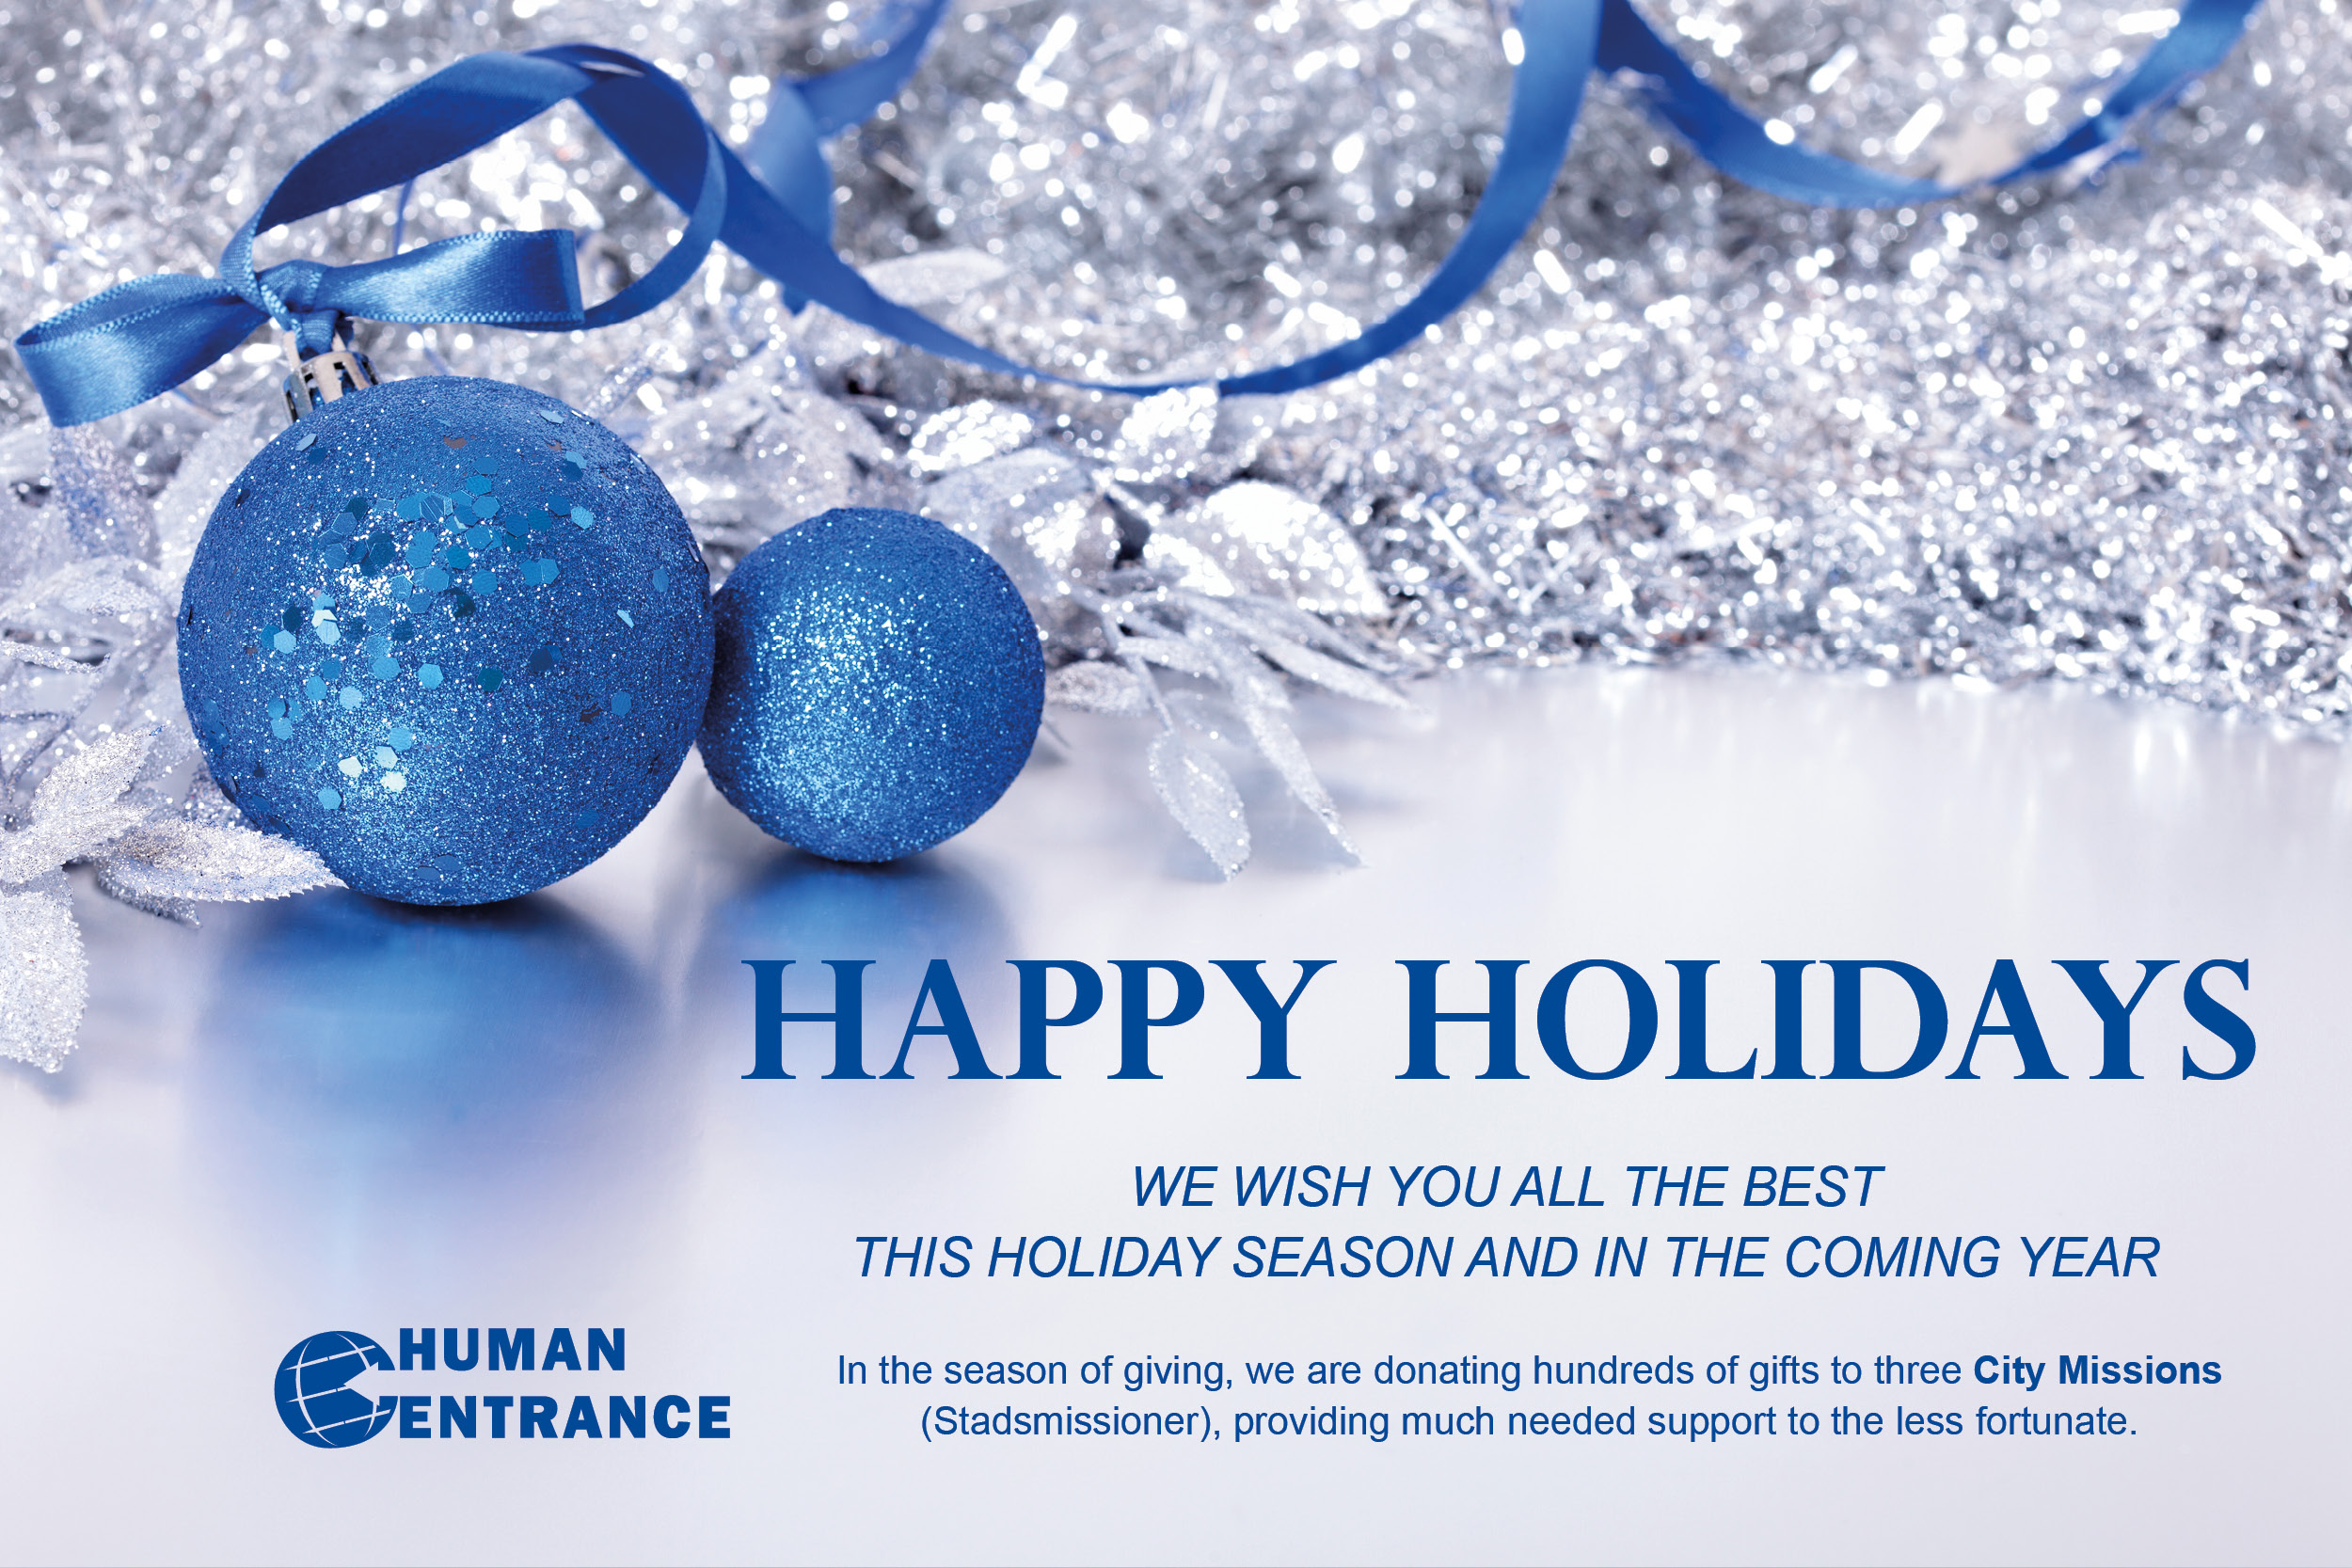 Human Entrance Holiday Greeting 2018